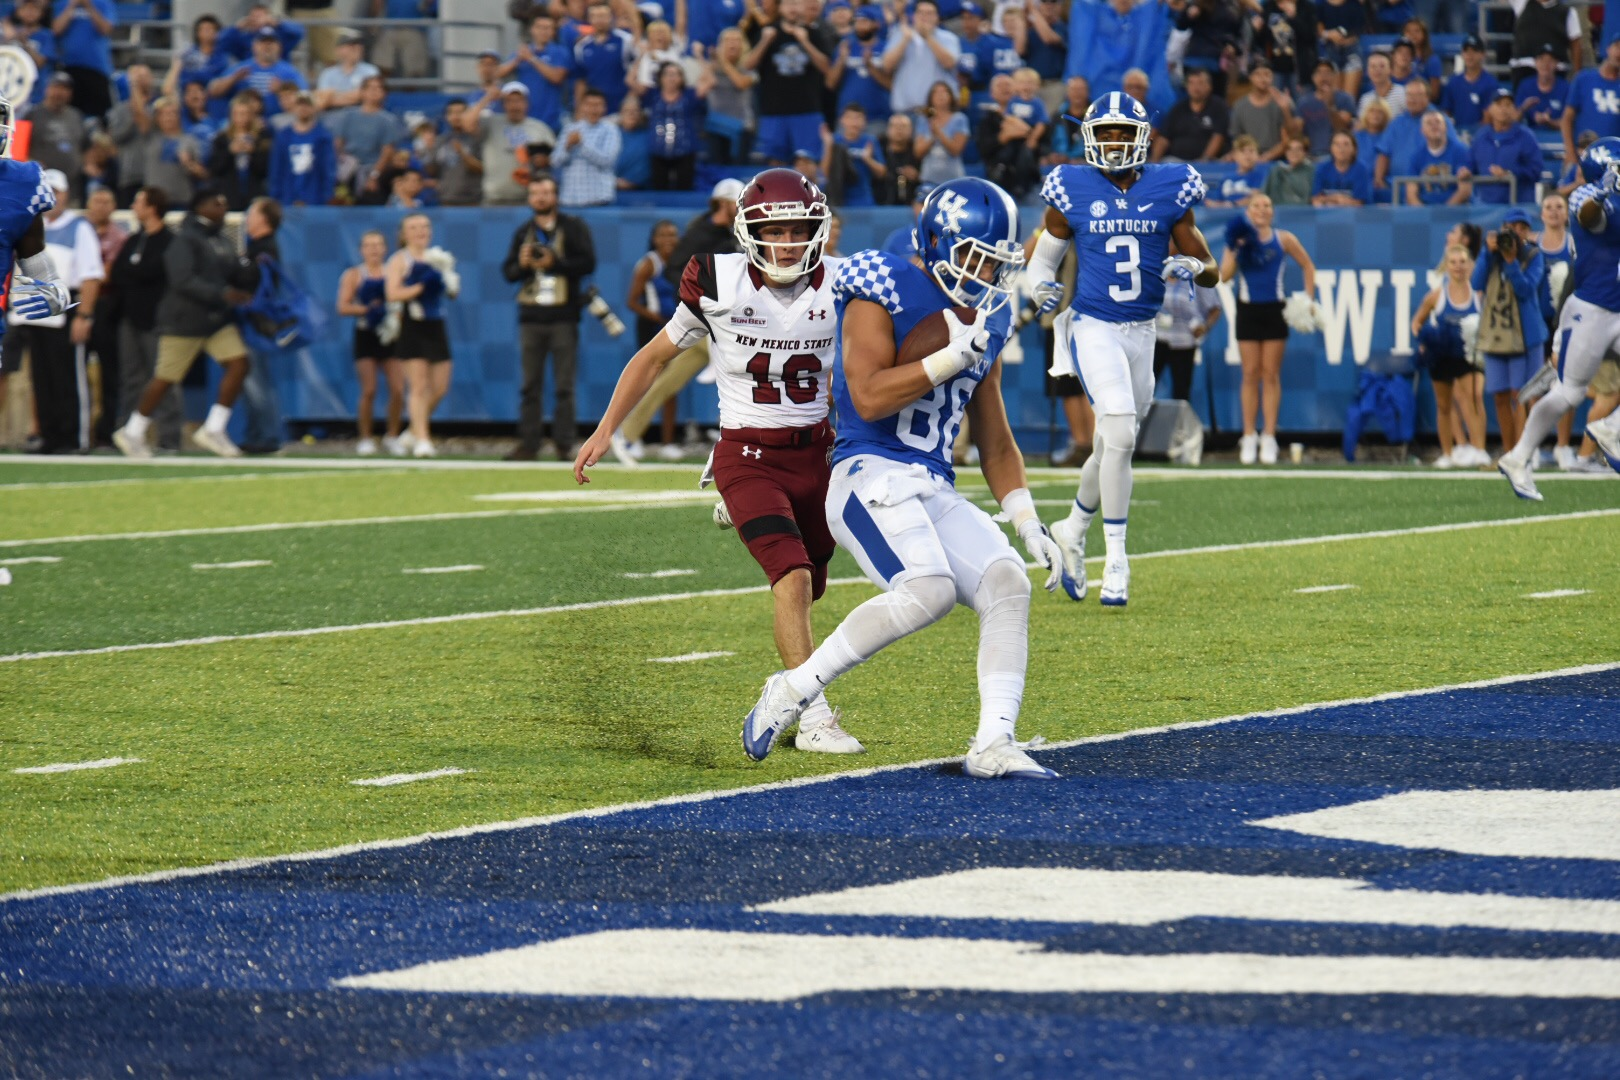 Charles Walker getting into the end zone after his punt return. Photo by Brandon Turner